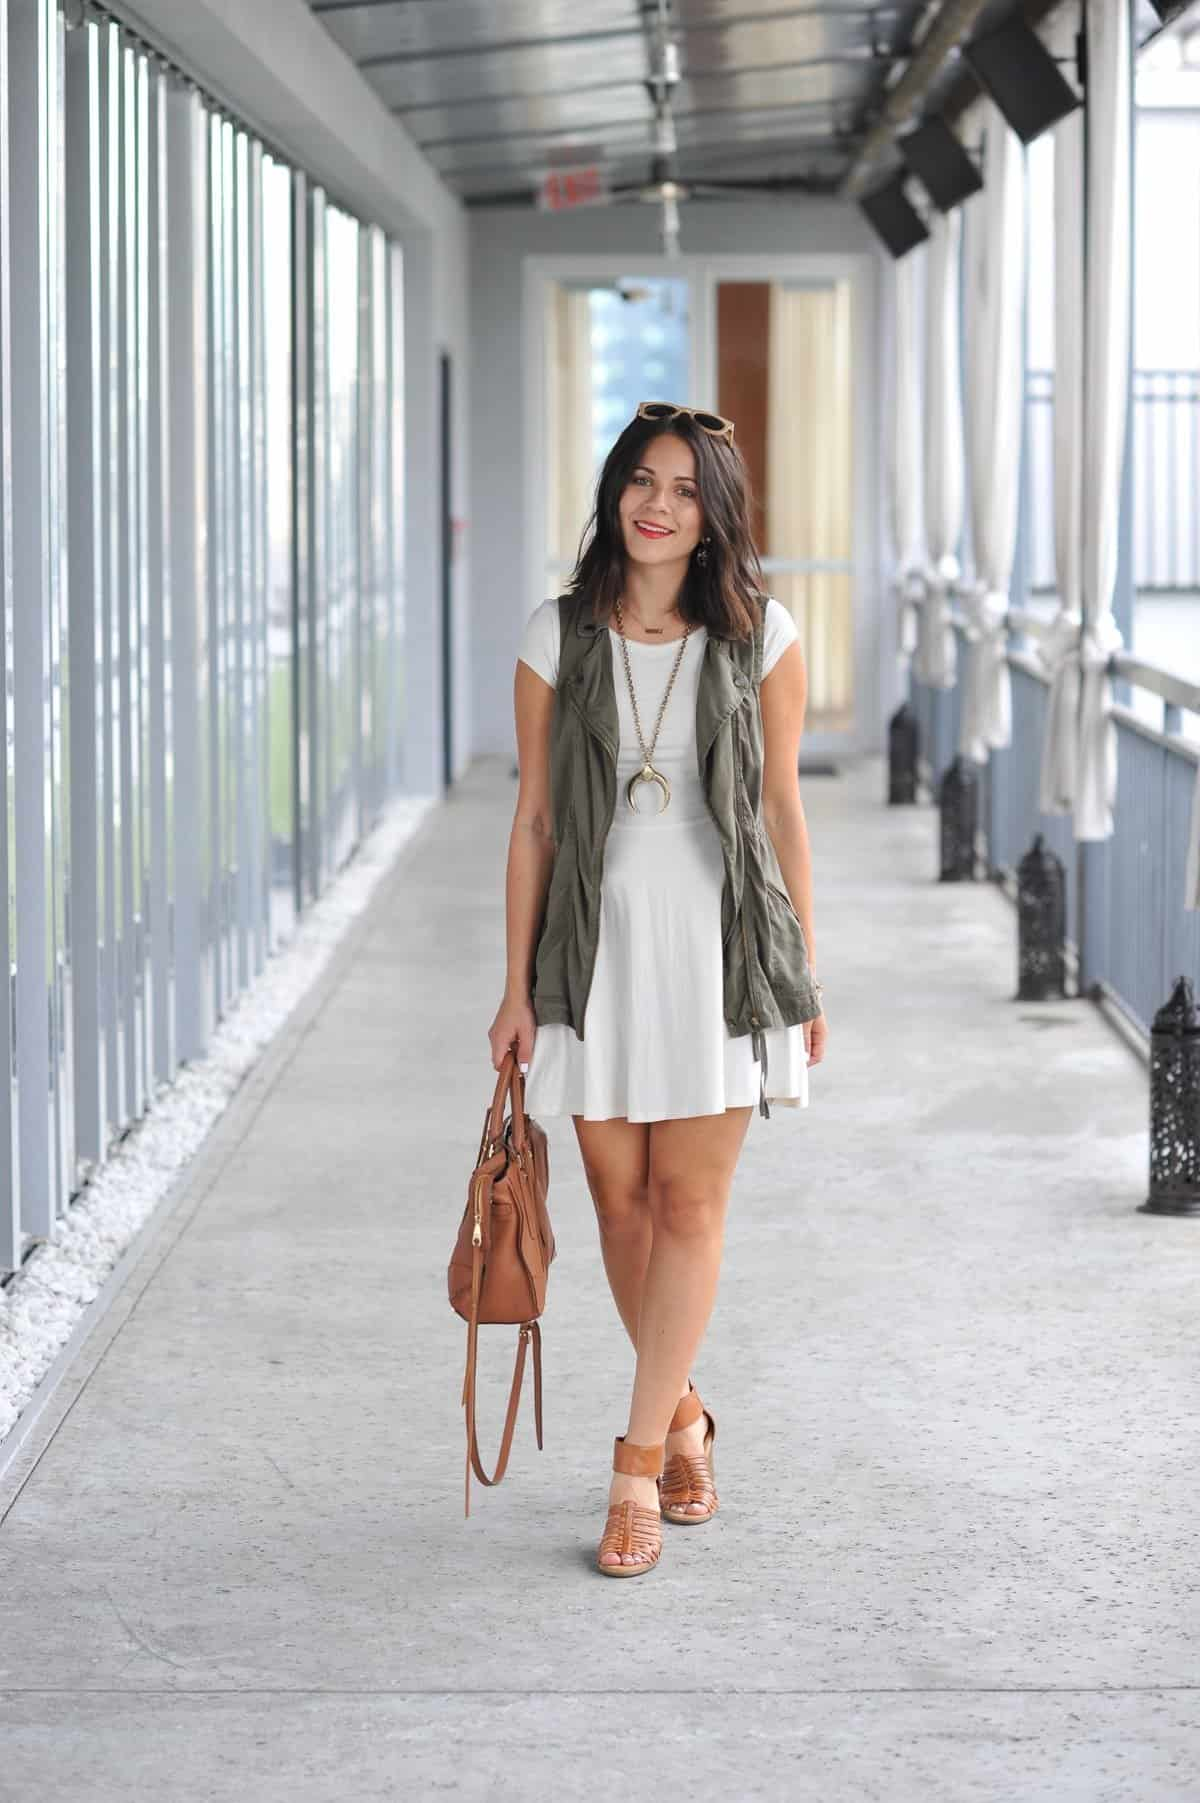 how to style a vest for summer - My Style Vita @mystylevita - 2